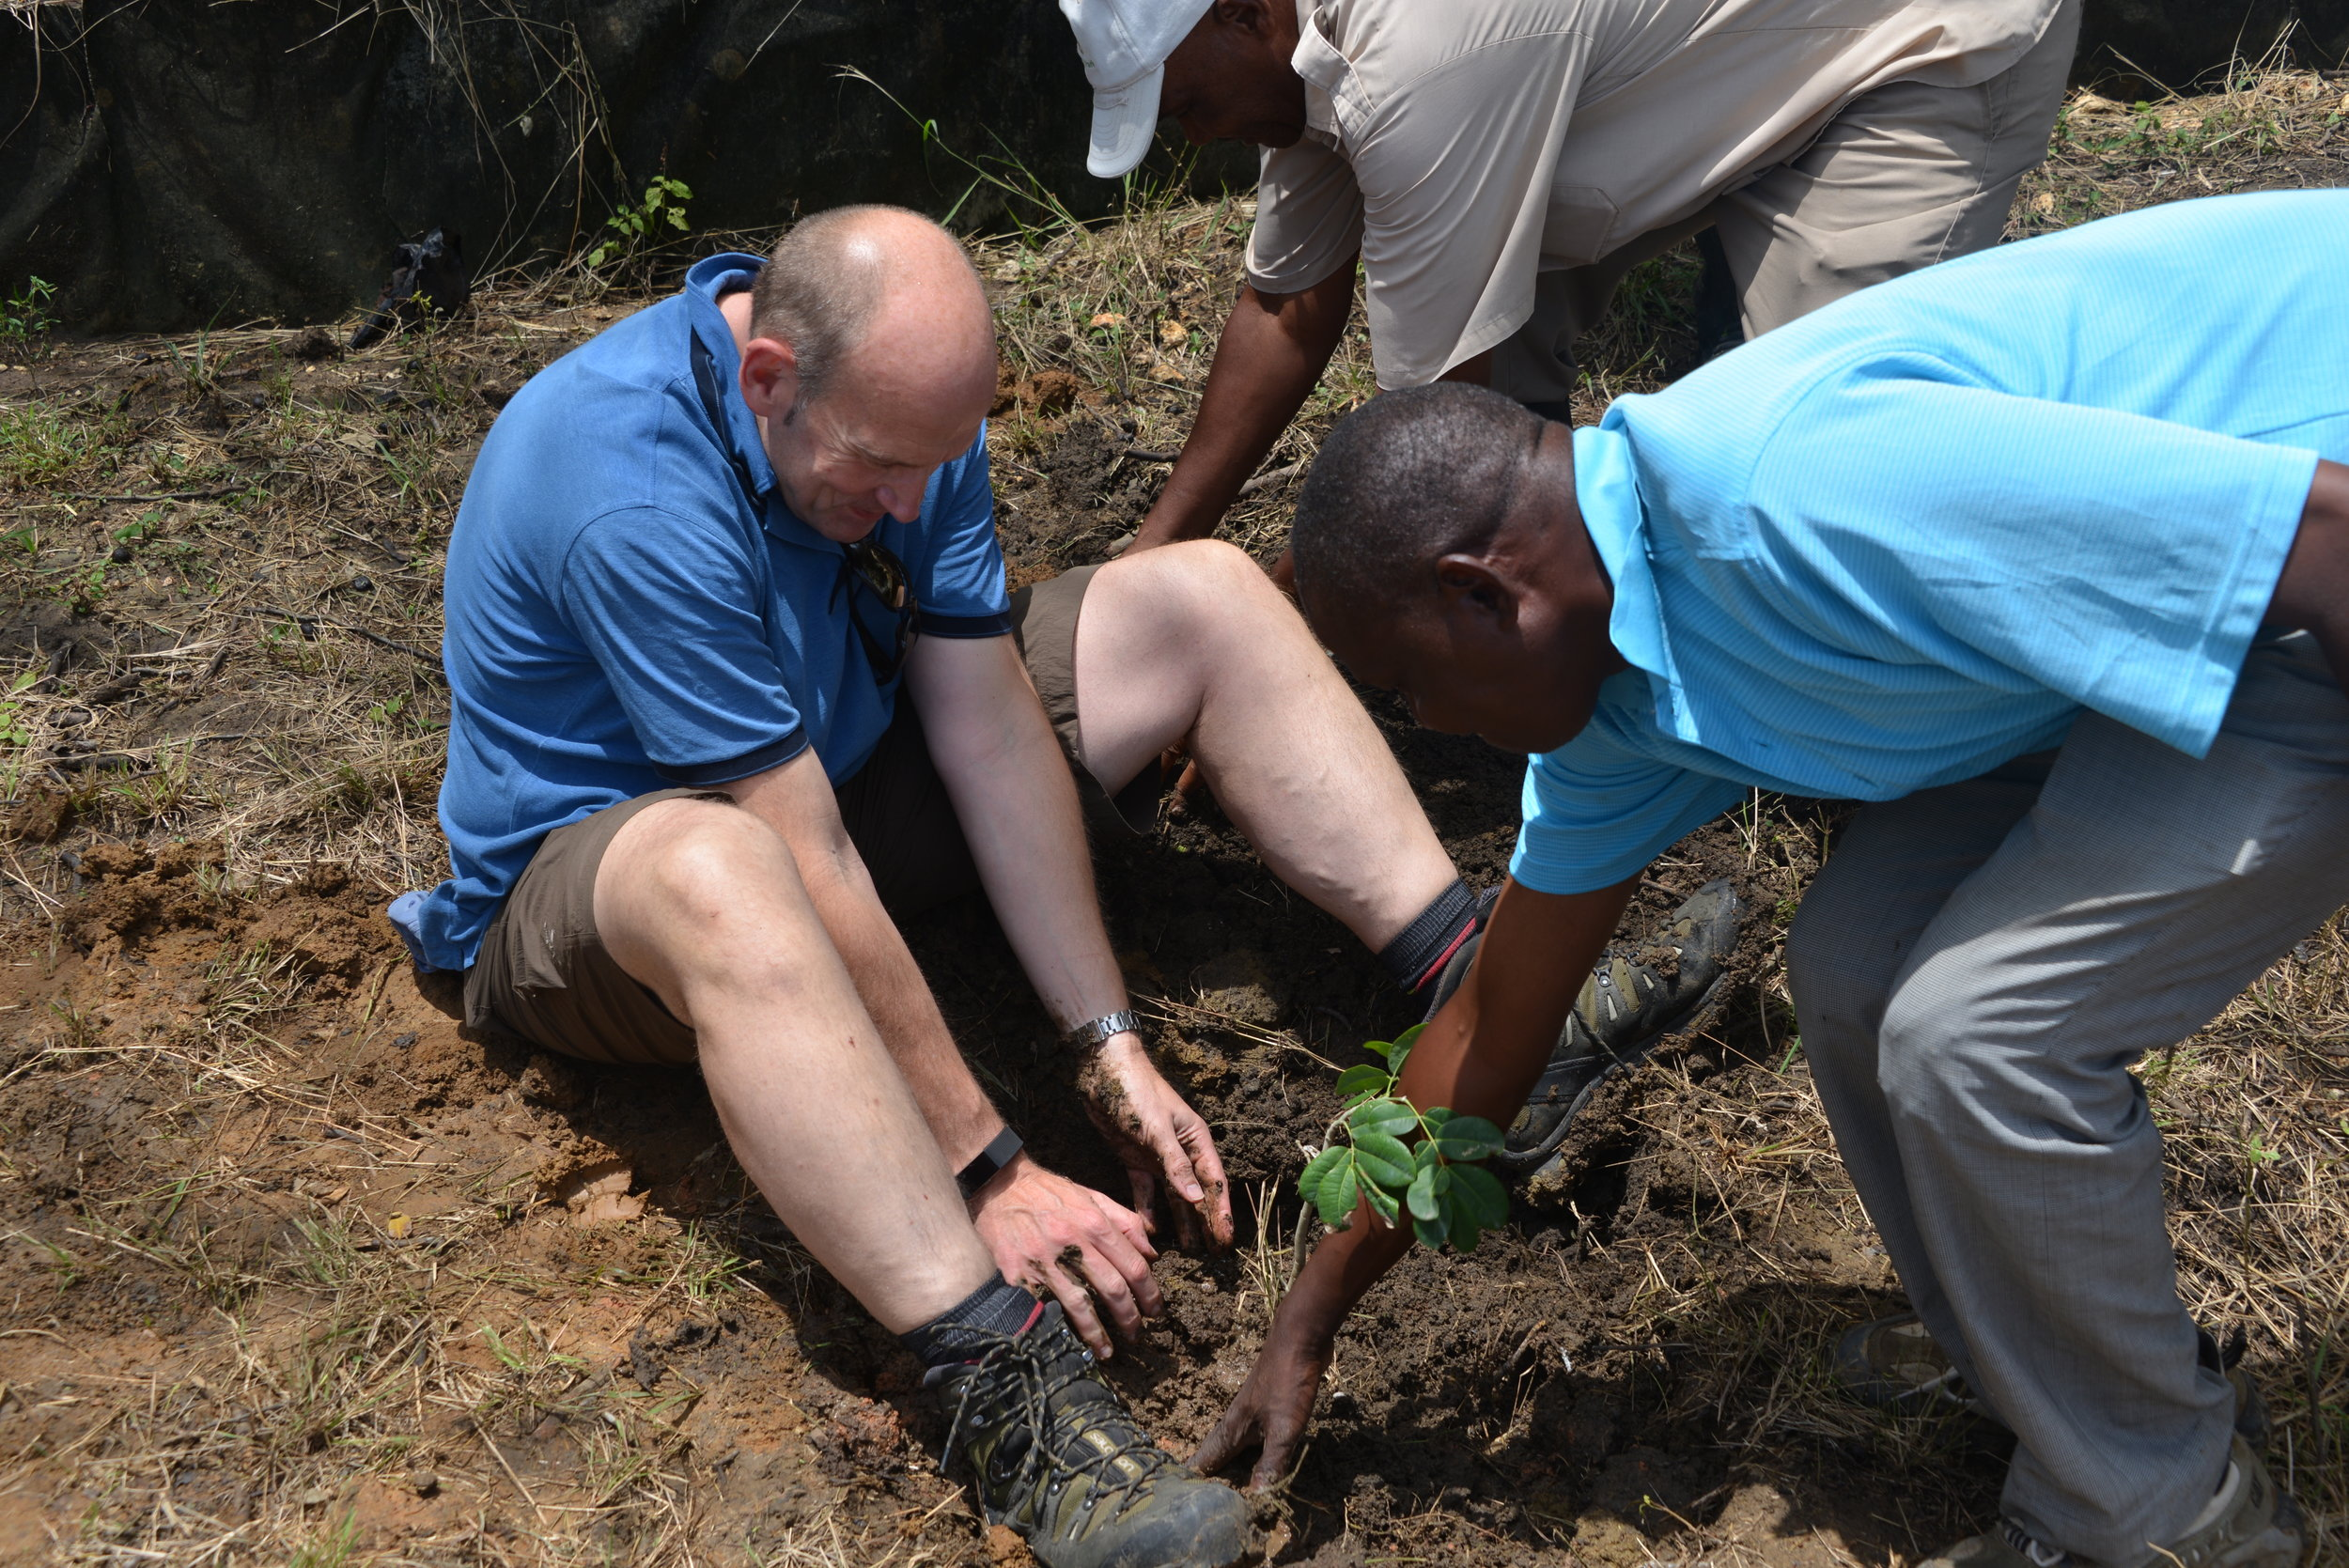 Three men digging/planting with their hands in the soil